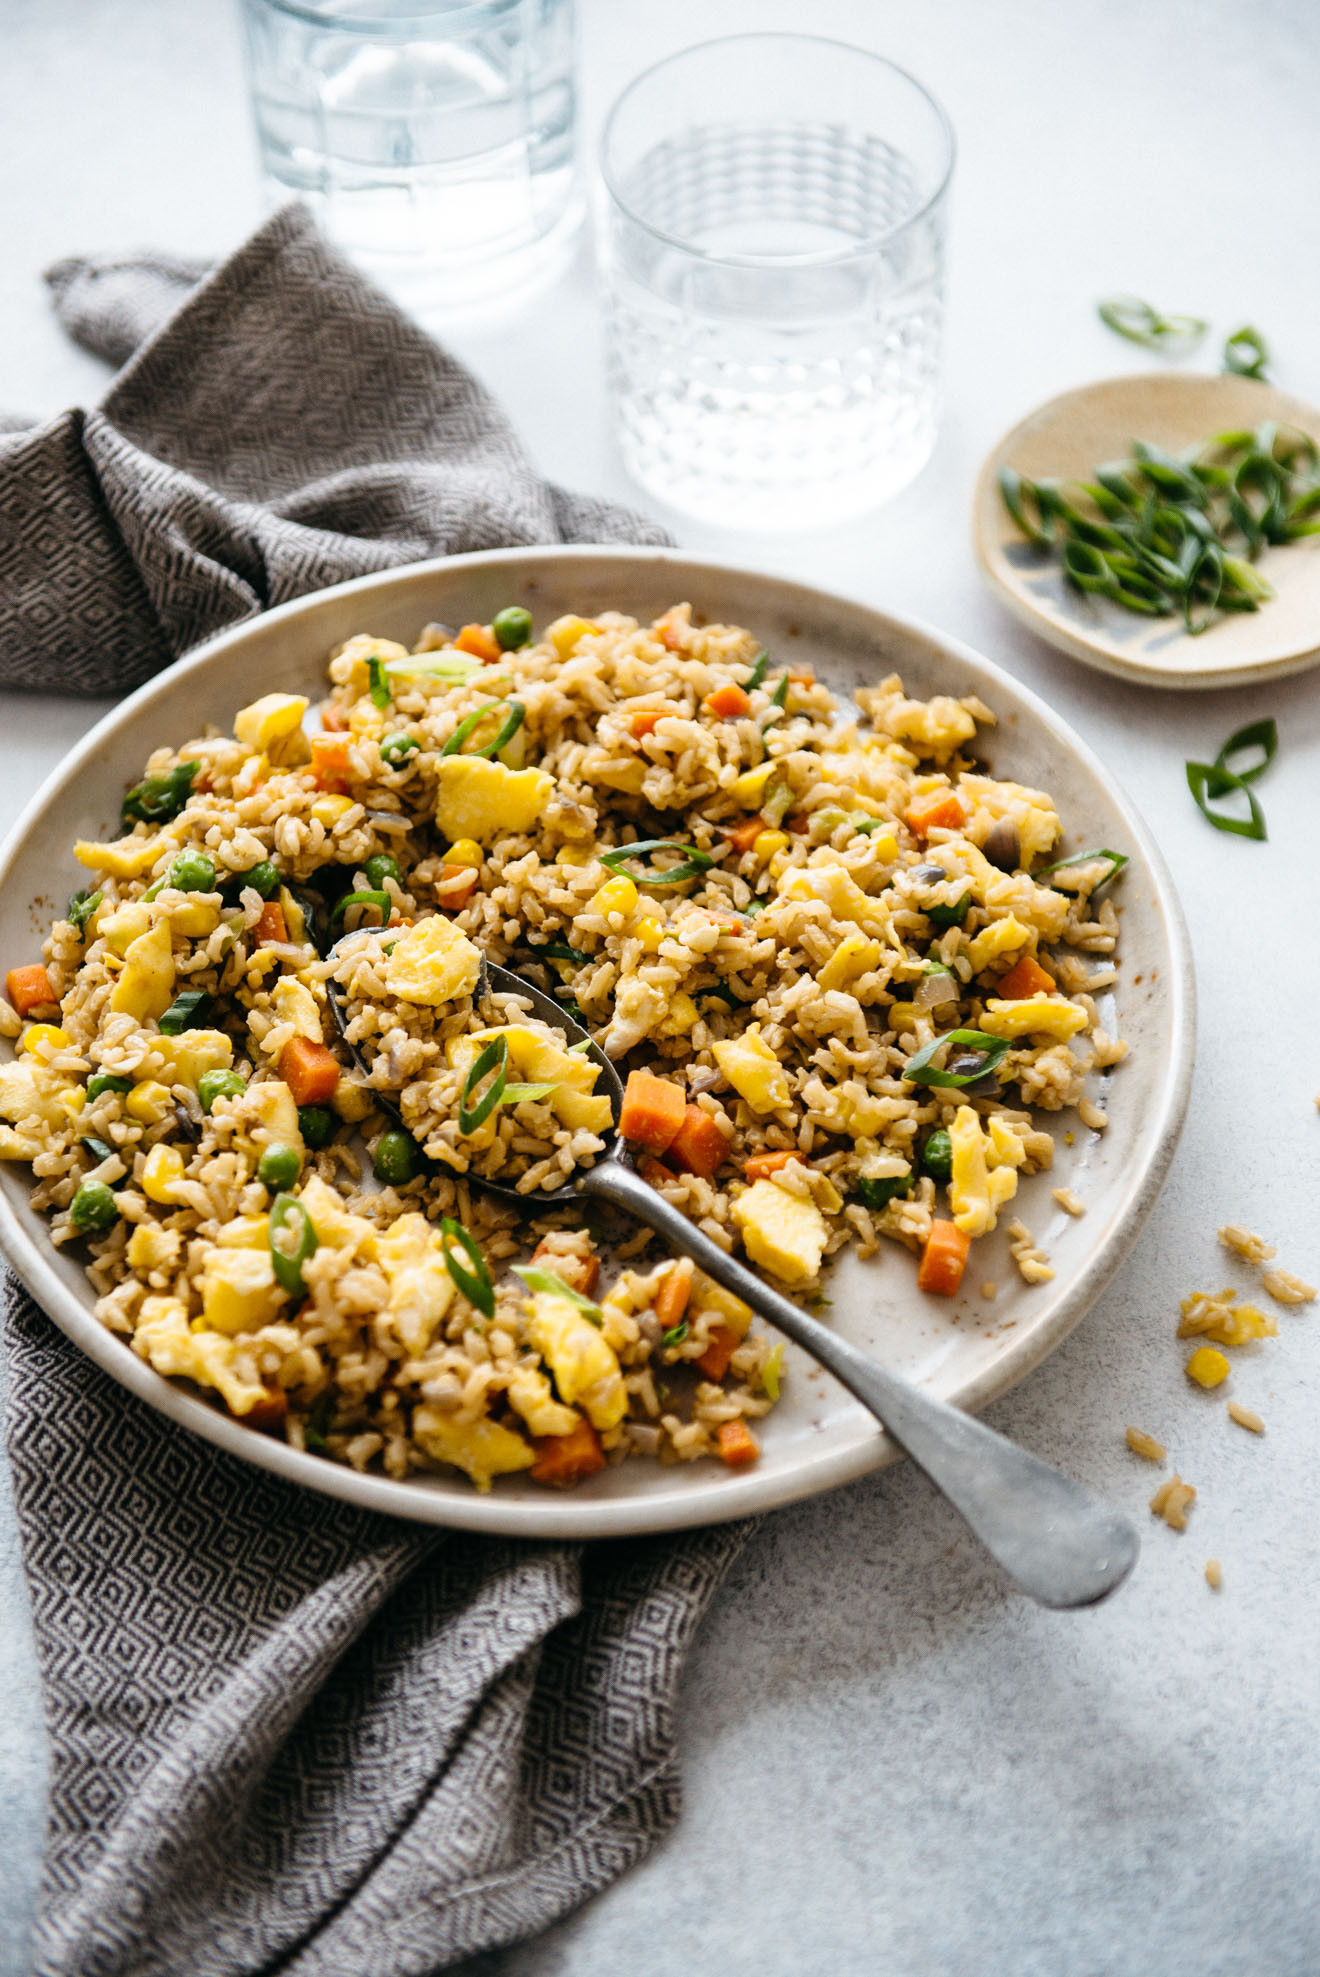 Healthy Egg Fried Rice  The Easiest Egg Fried Rice 15 Minutes